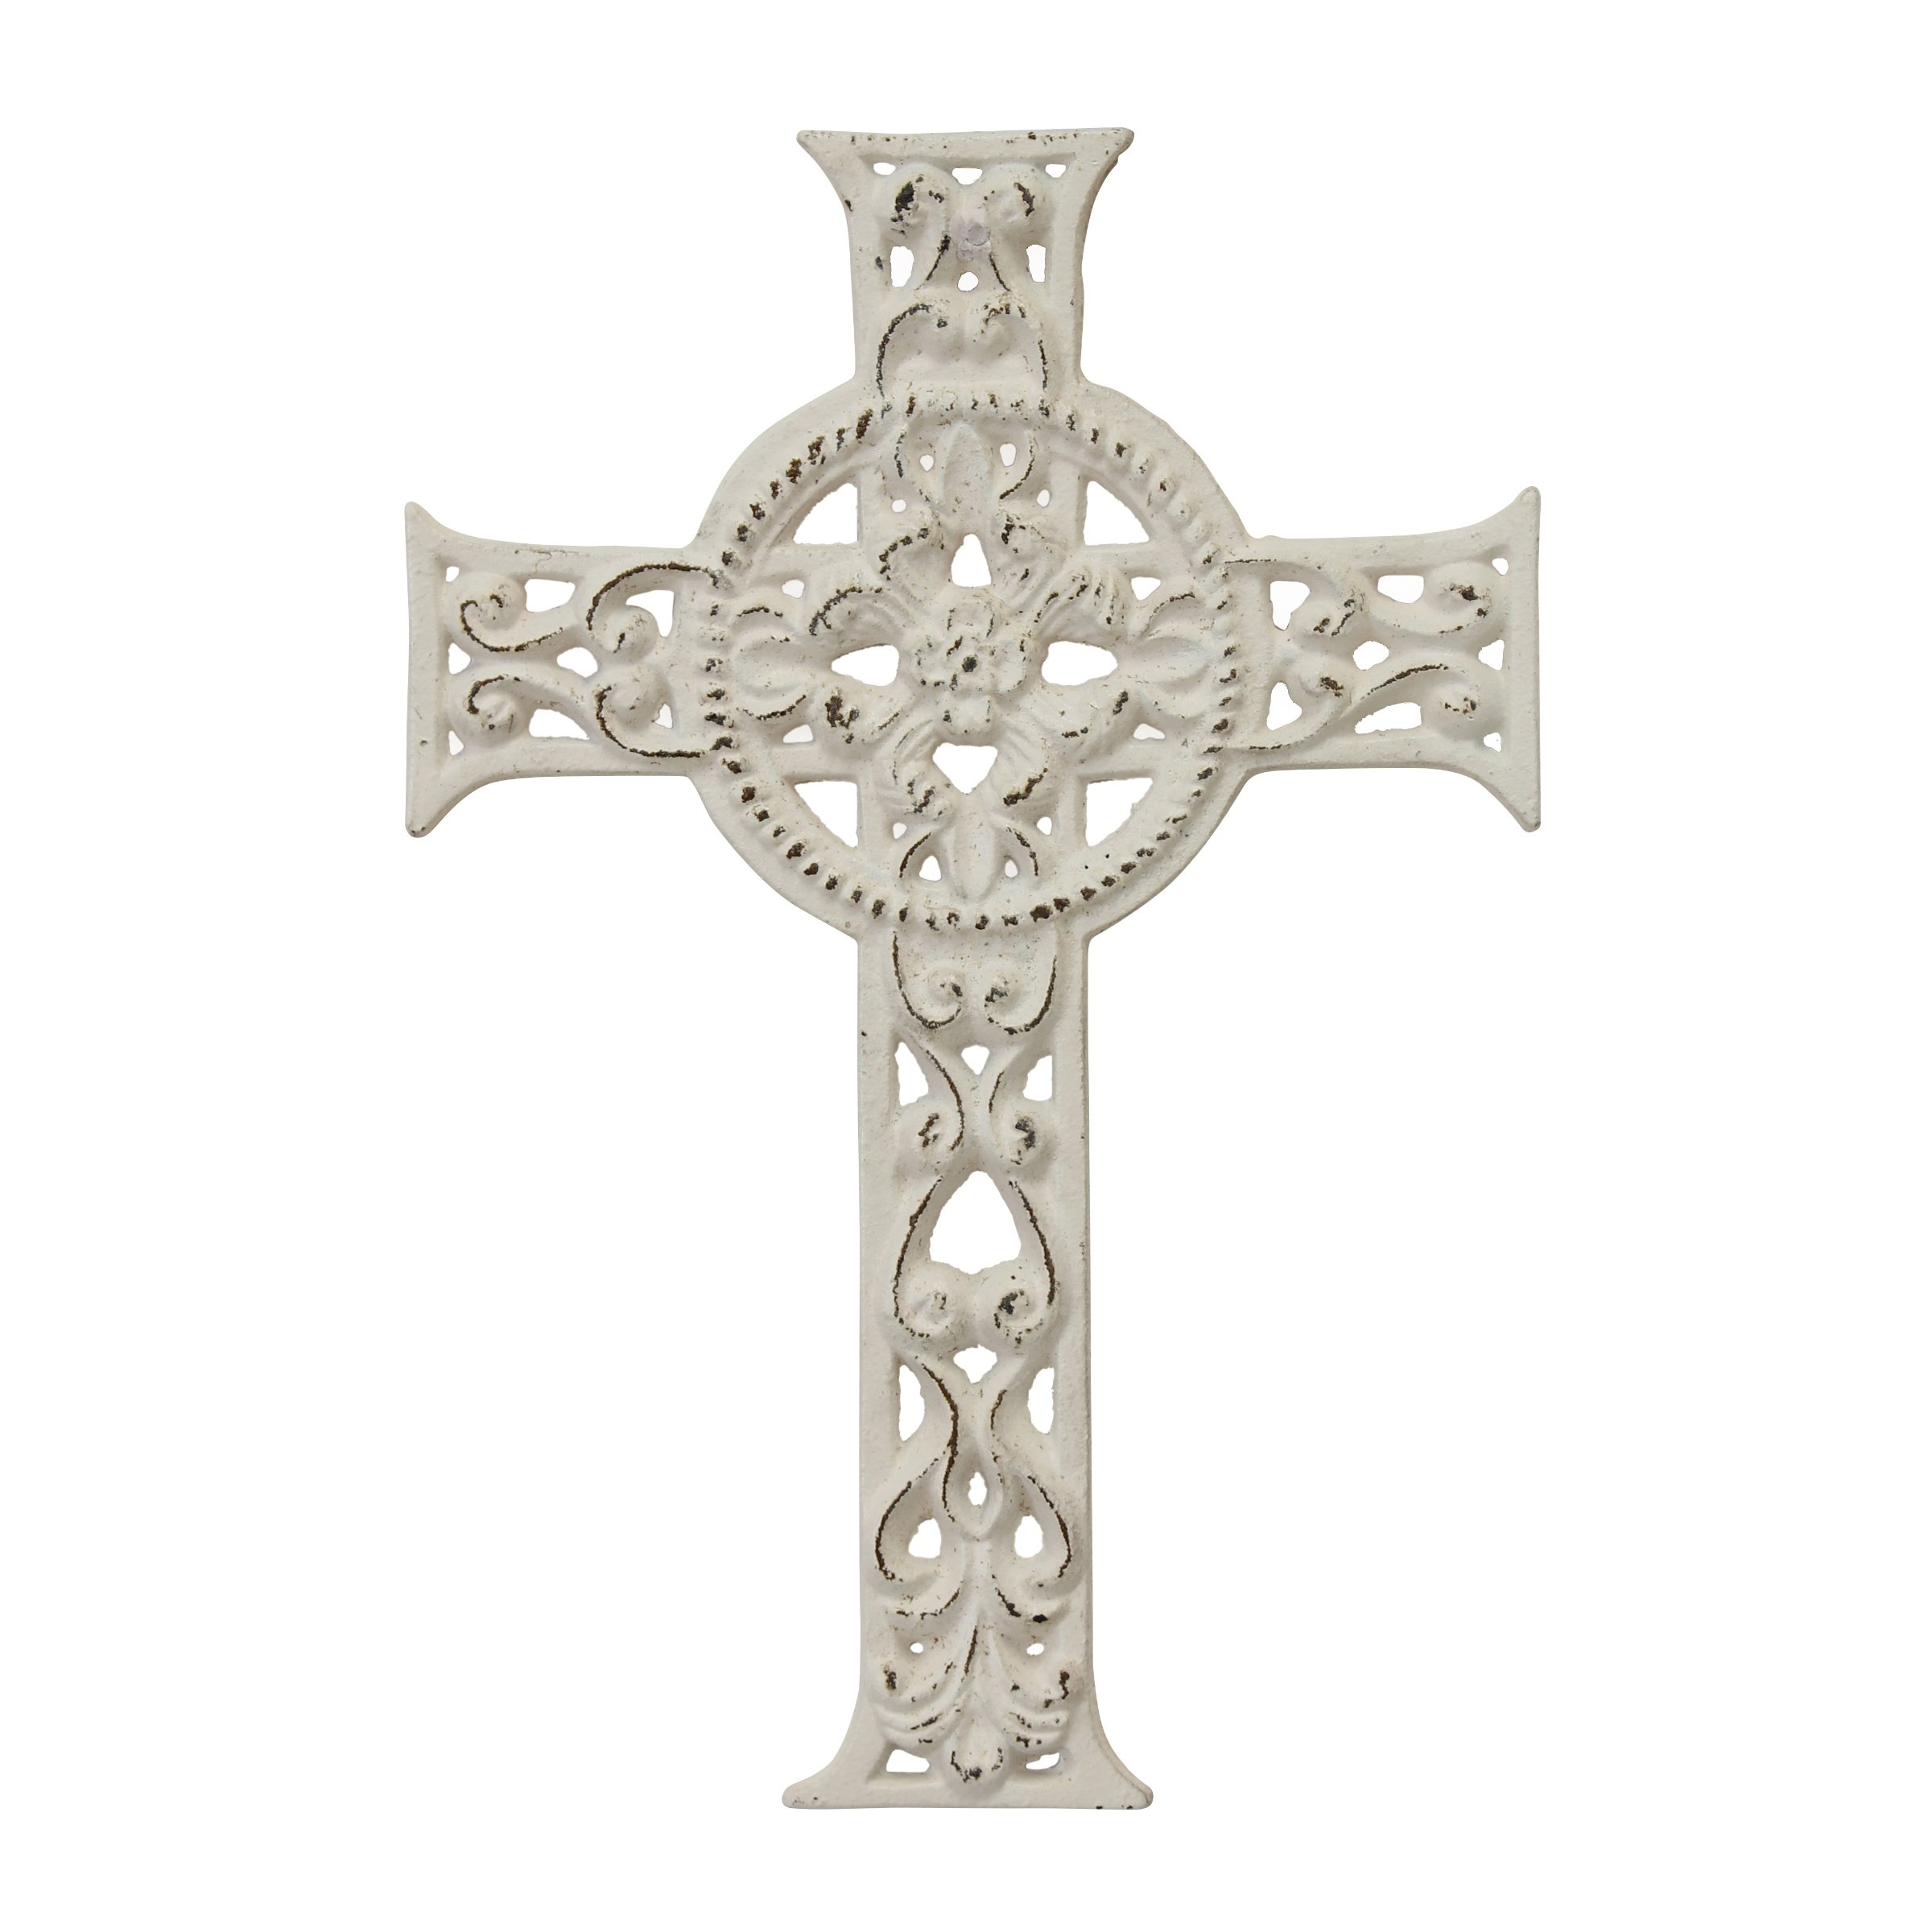 Stonebriar Decorative Distressed White Cast Iron Wall Cross with Hanging Loop, Celtic Inspired Design, Religious Decoration for Weddings, Parties, or Everyday Home Decor